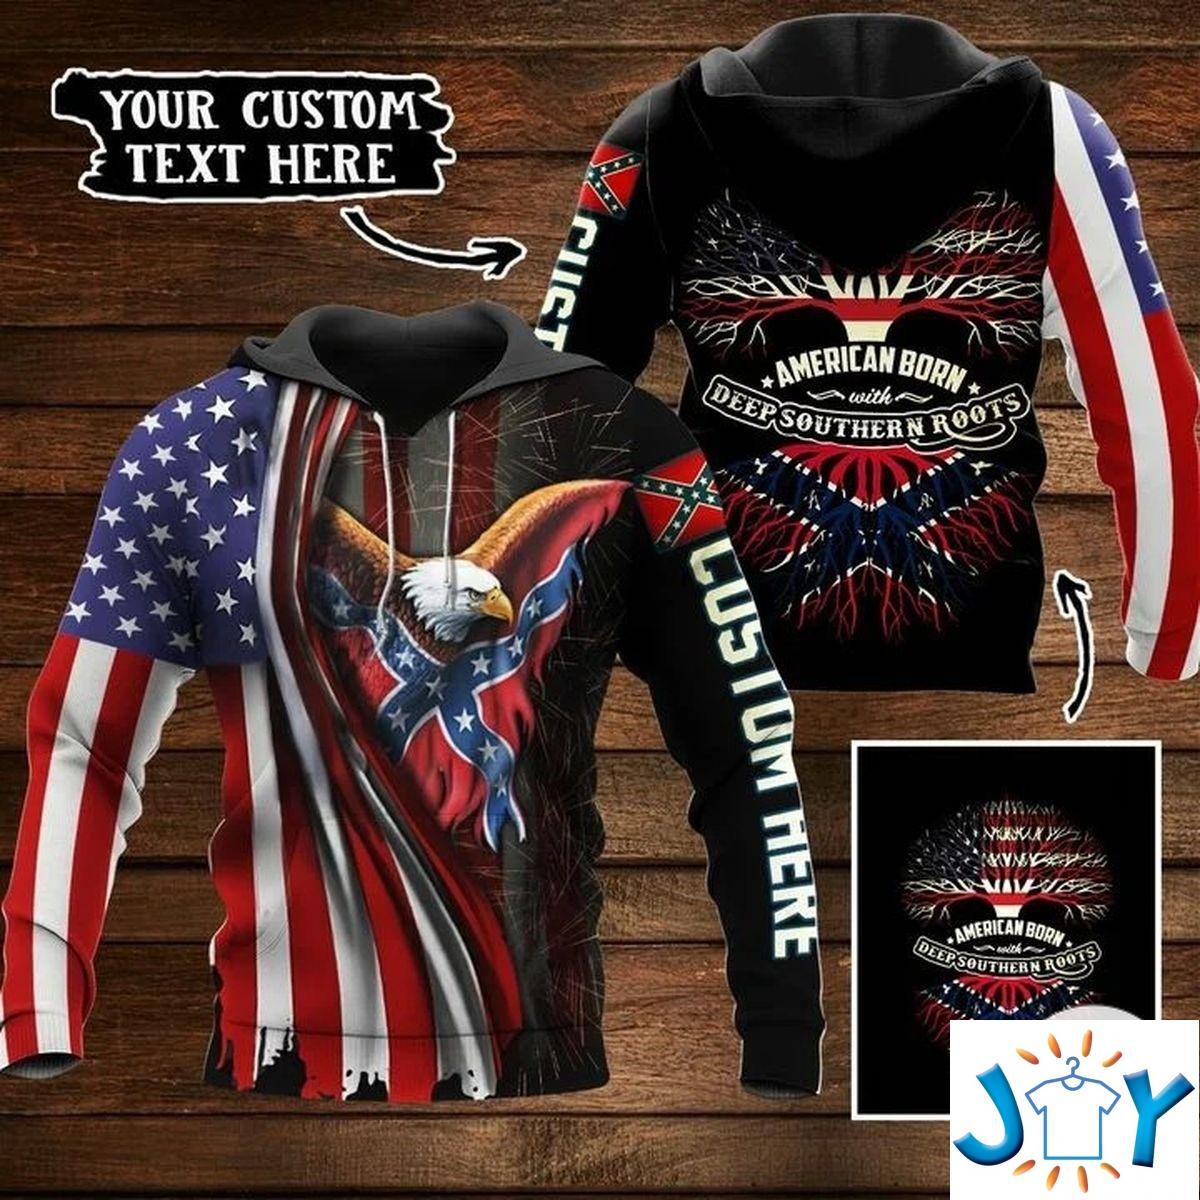 Personalized American Born With Deep Southern Roots Rebel Flag 3D Hoodie